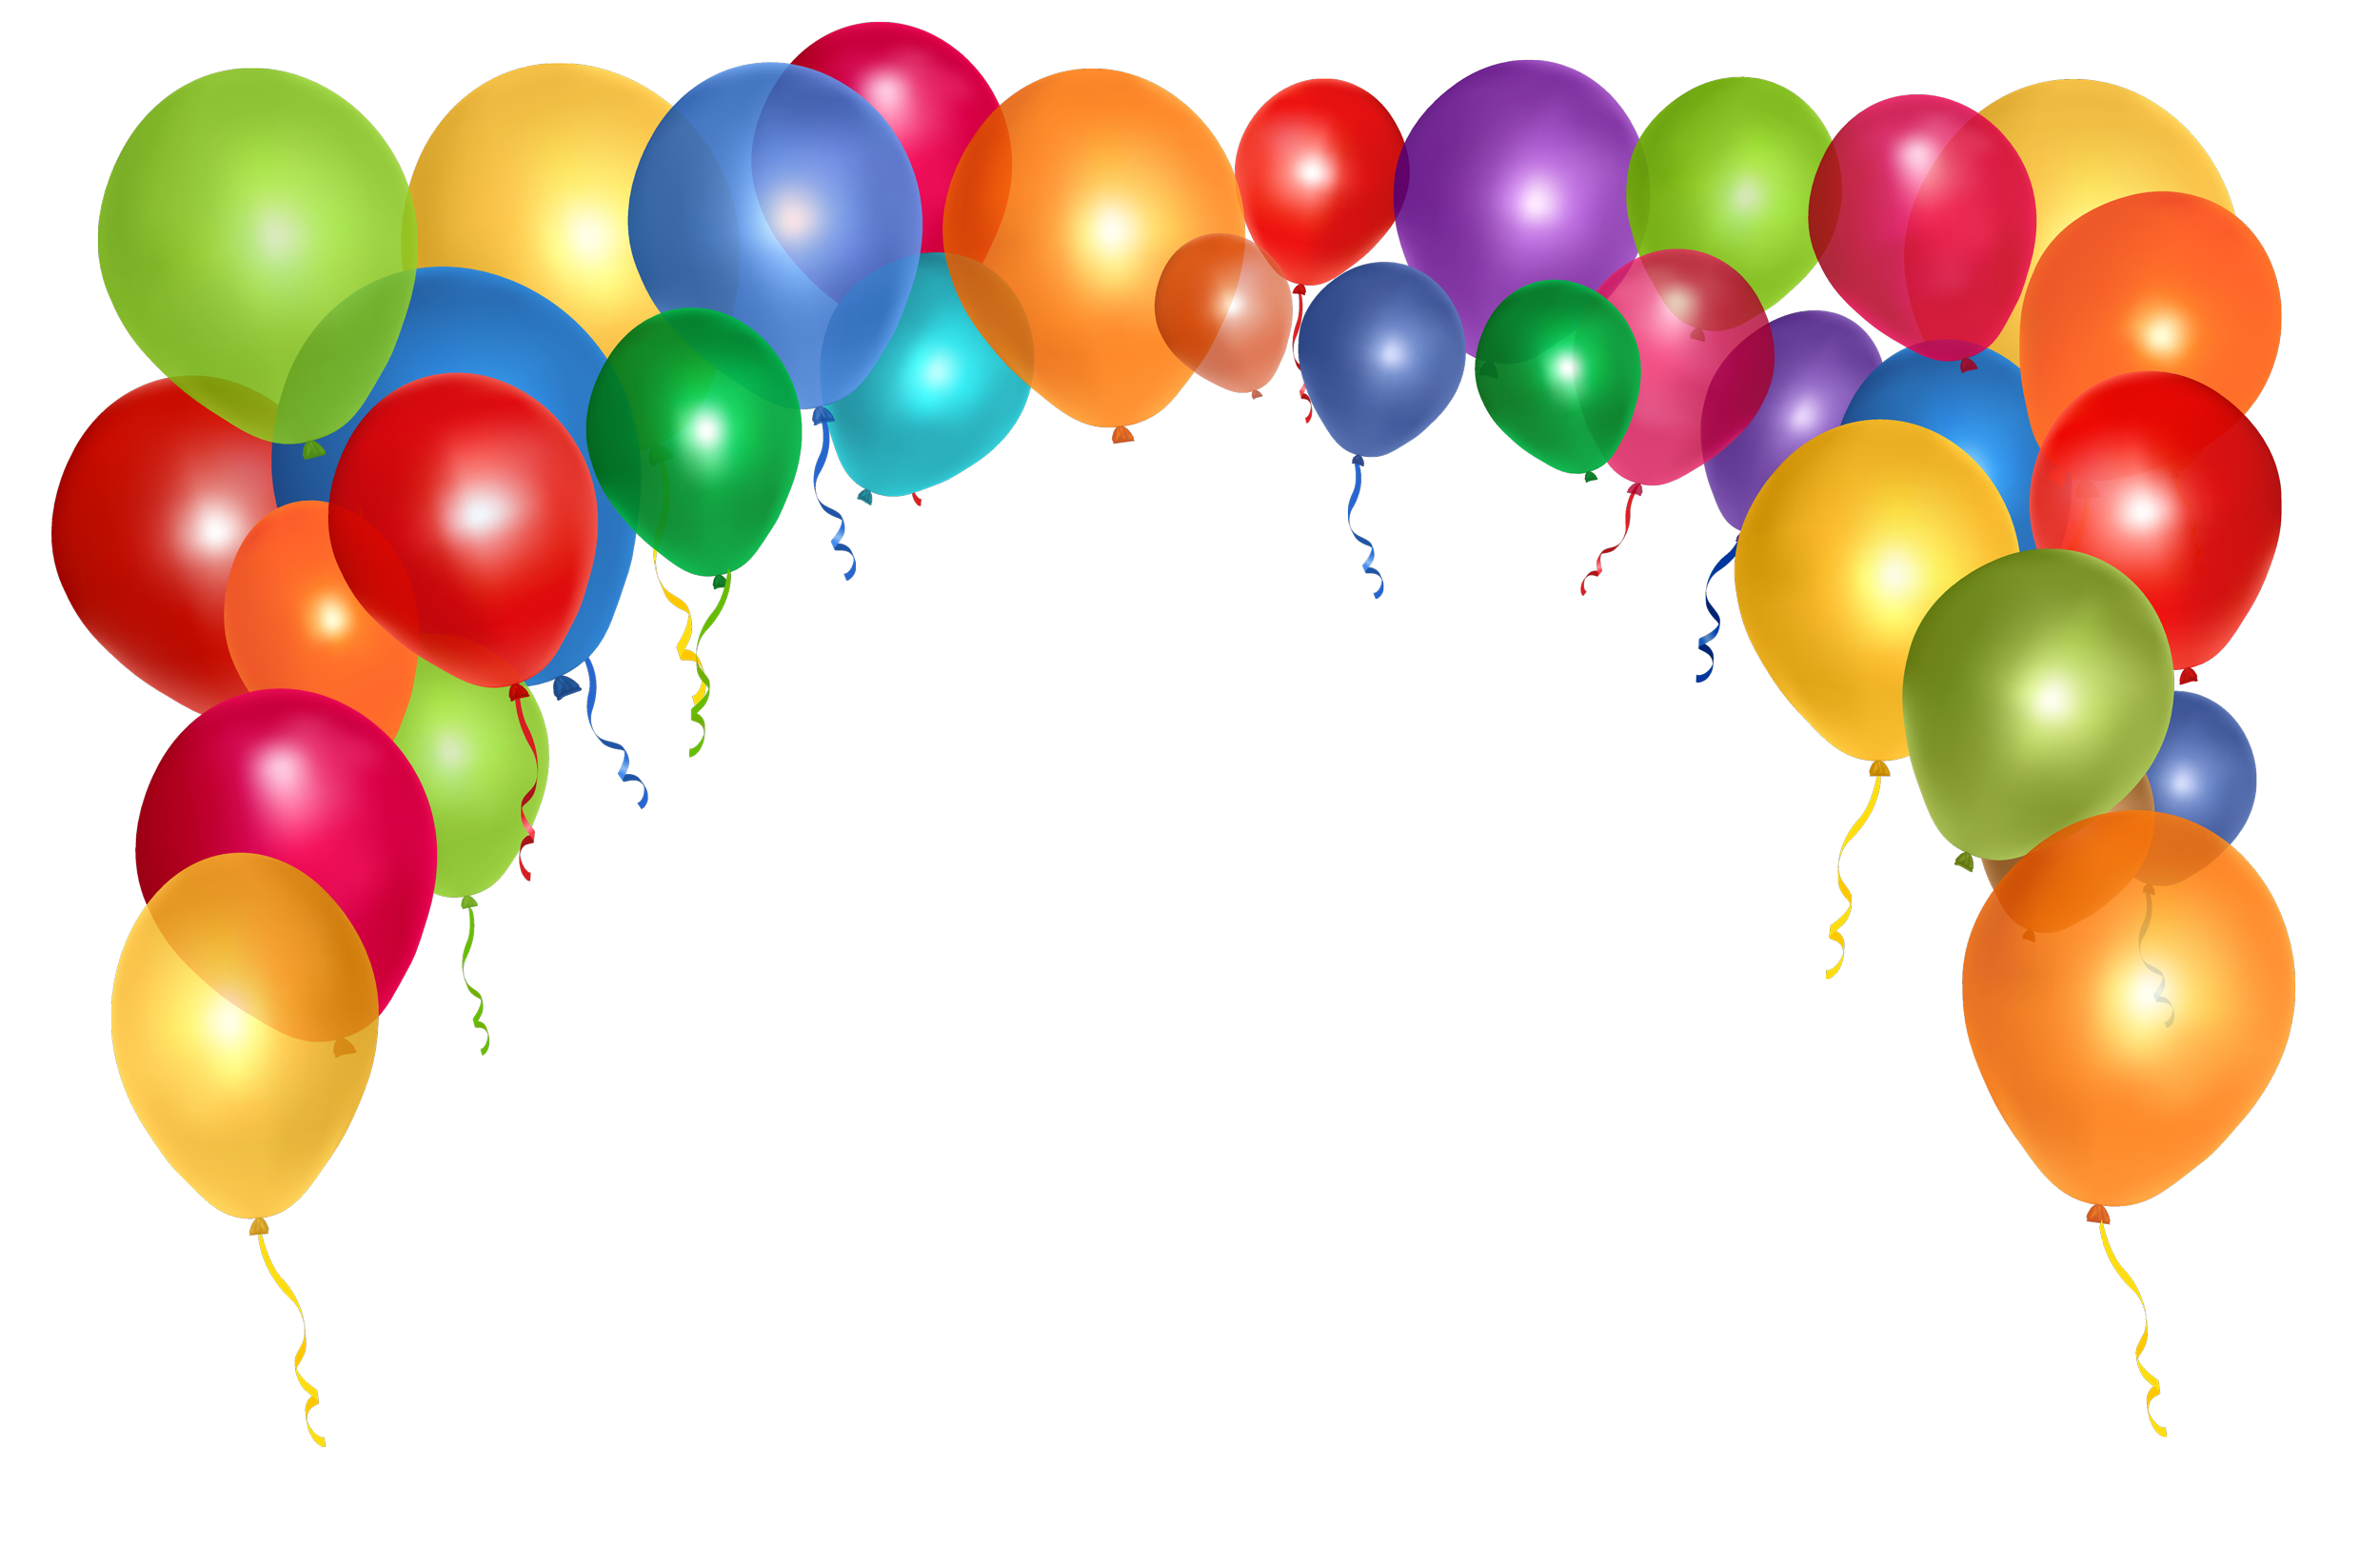 Balloons Png Transparent Background Balloon Background Birthday Balloons Clipart Transparent Balloons